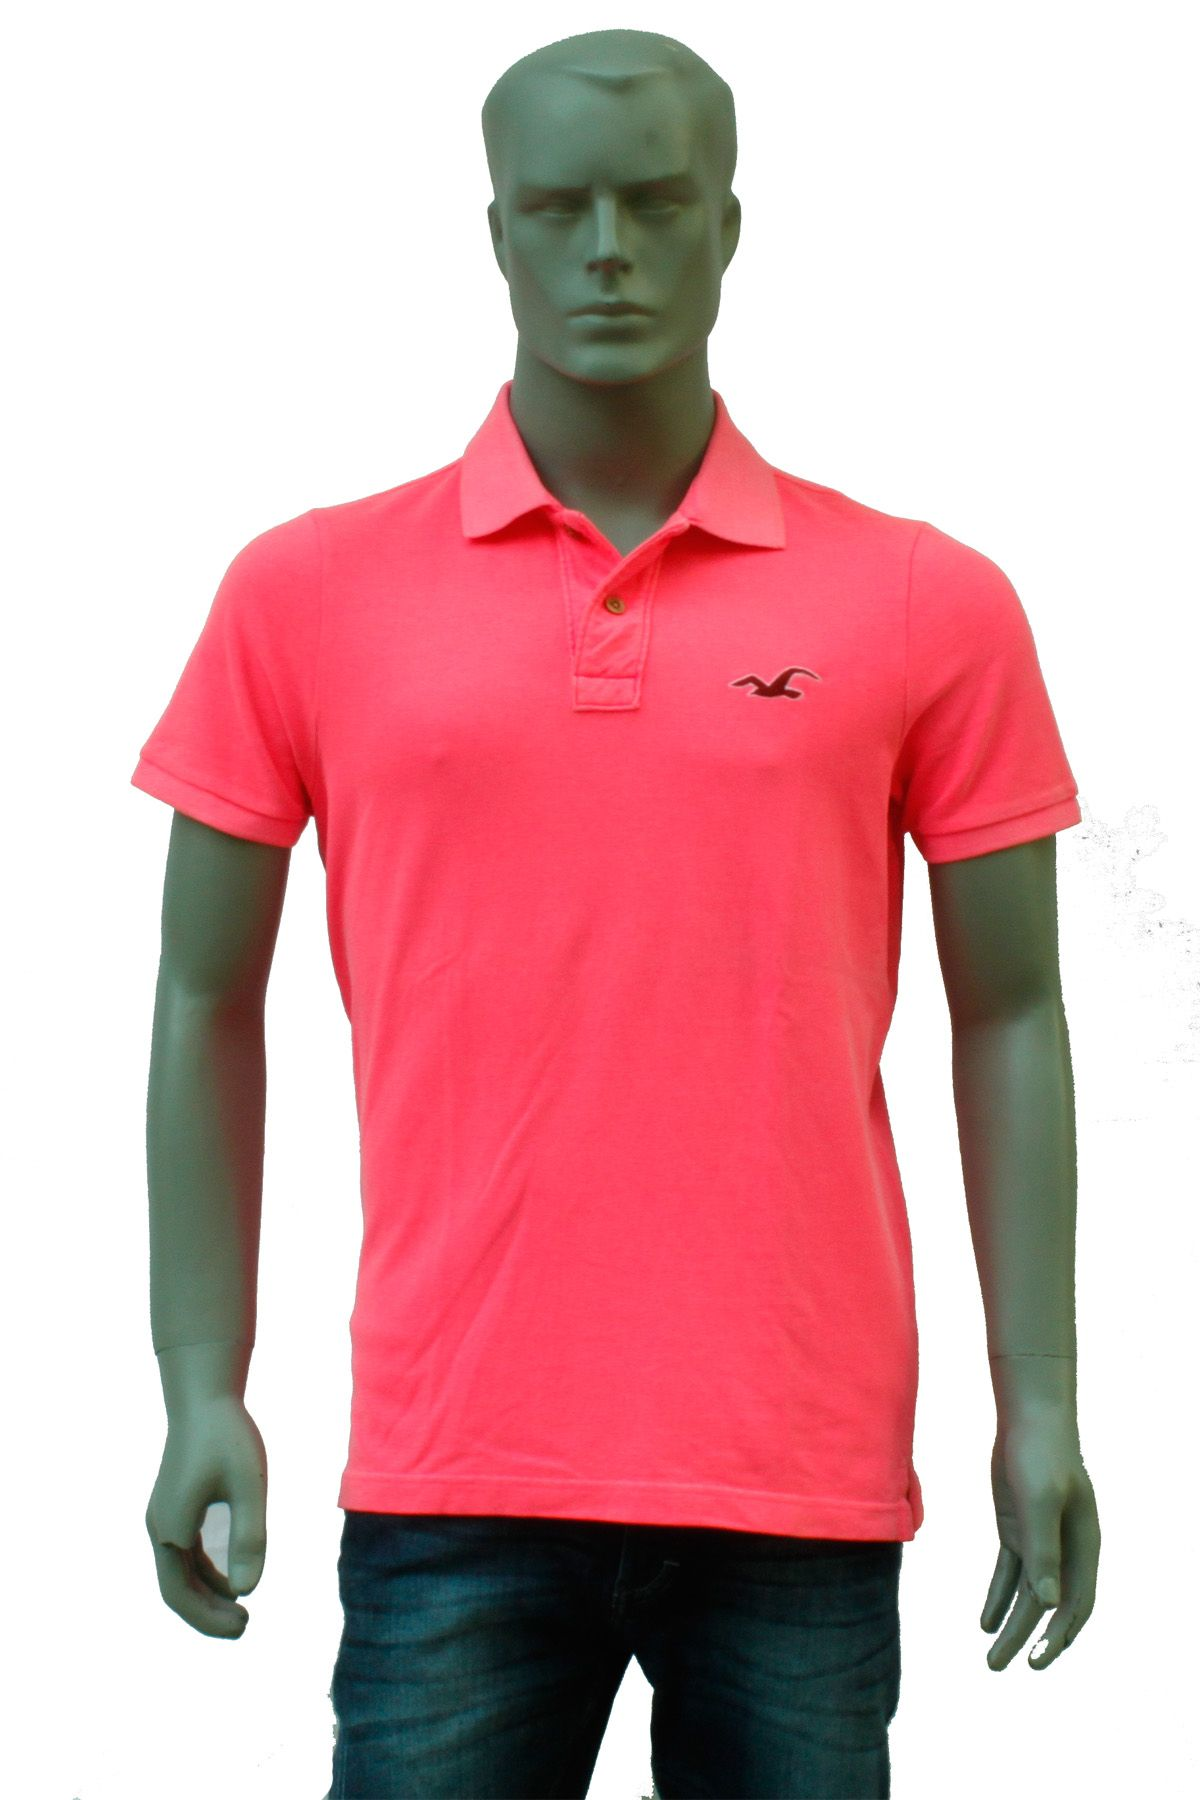 51153d0d Polo T Shirts, Hollister, Stylus, Polo Shirts